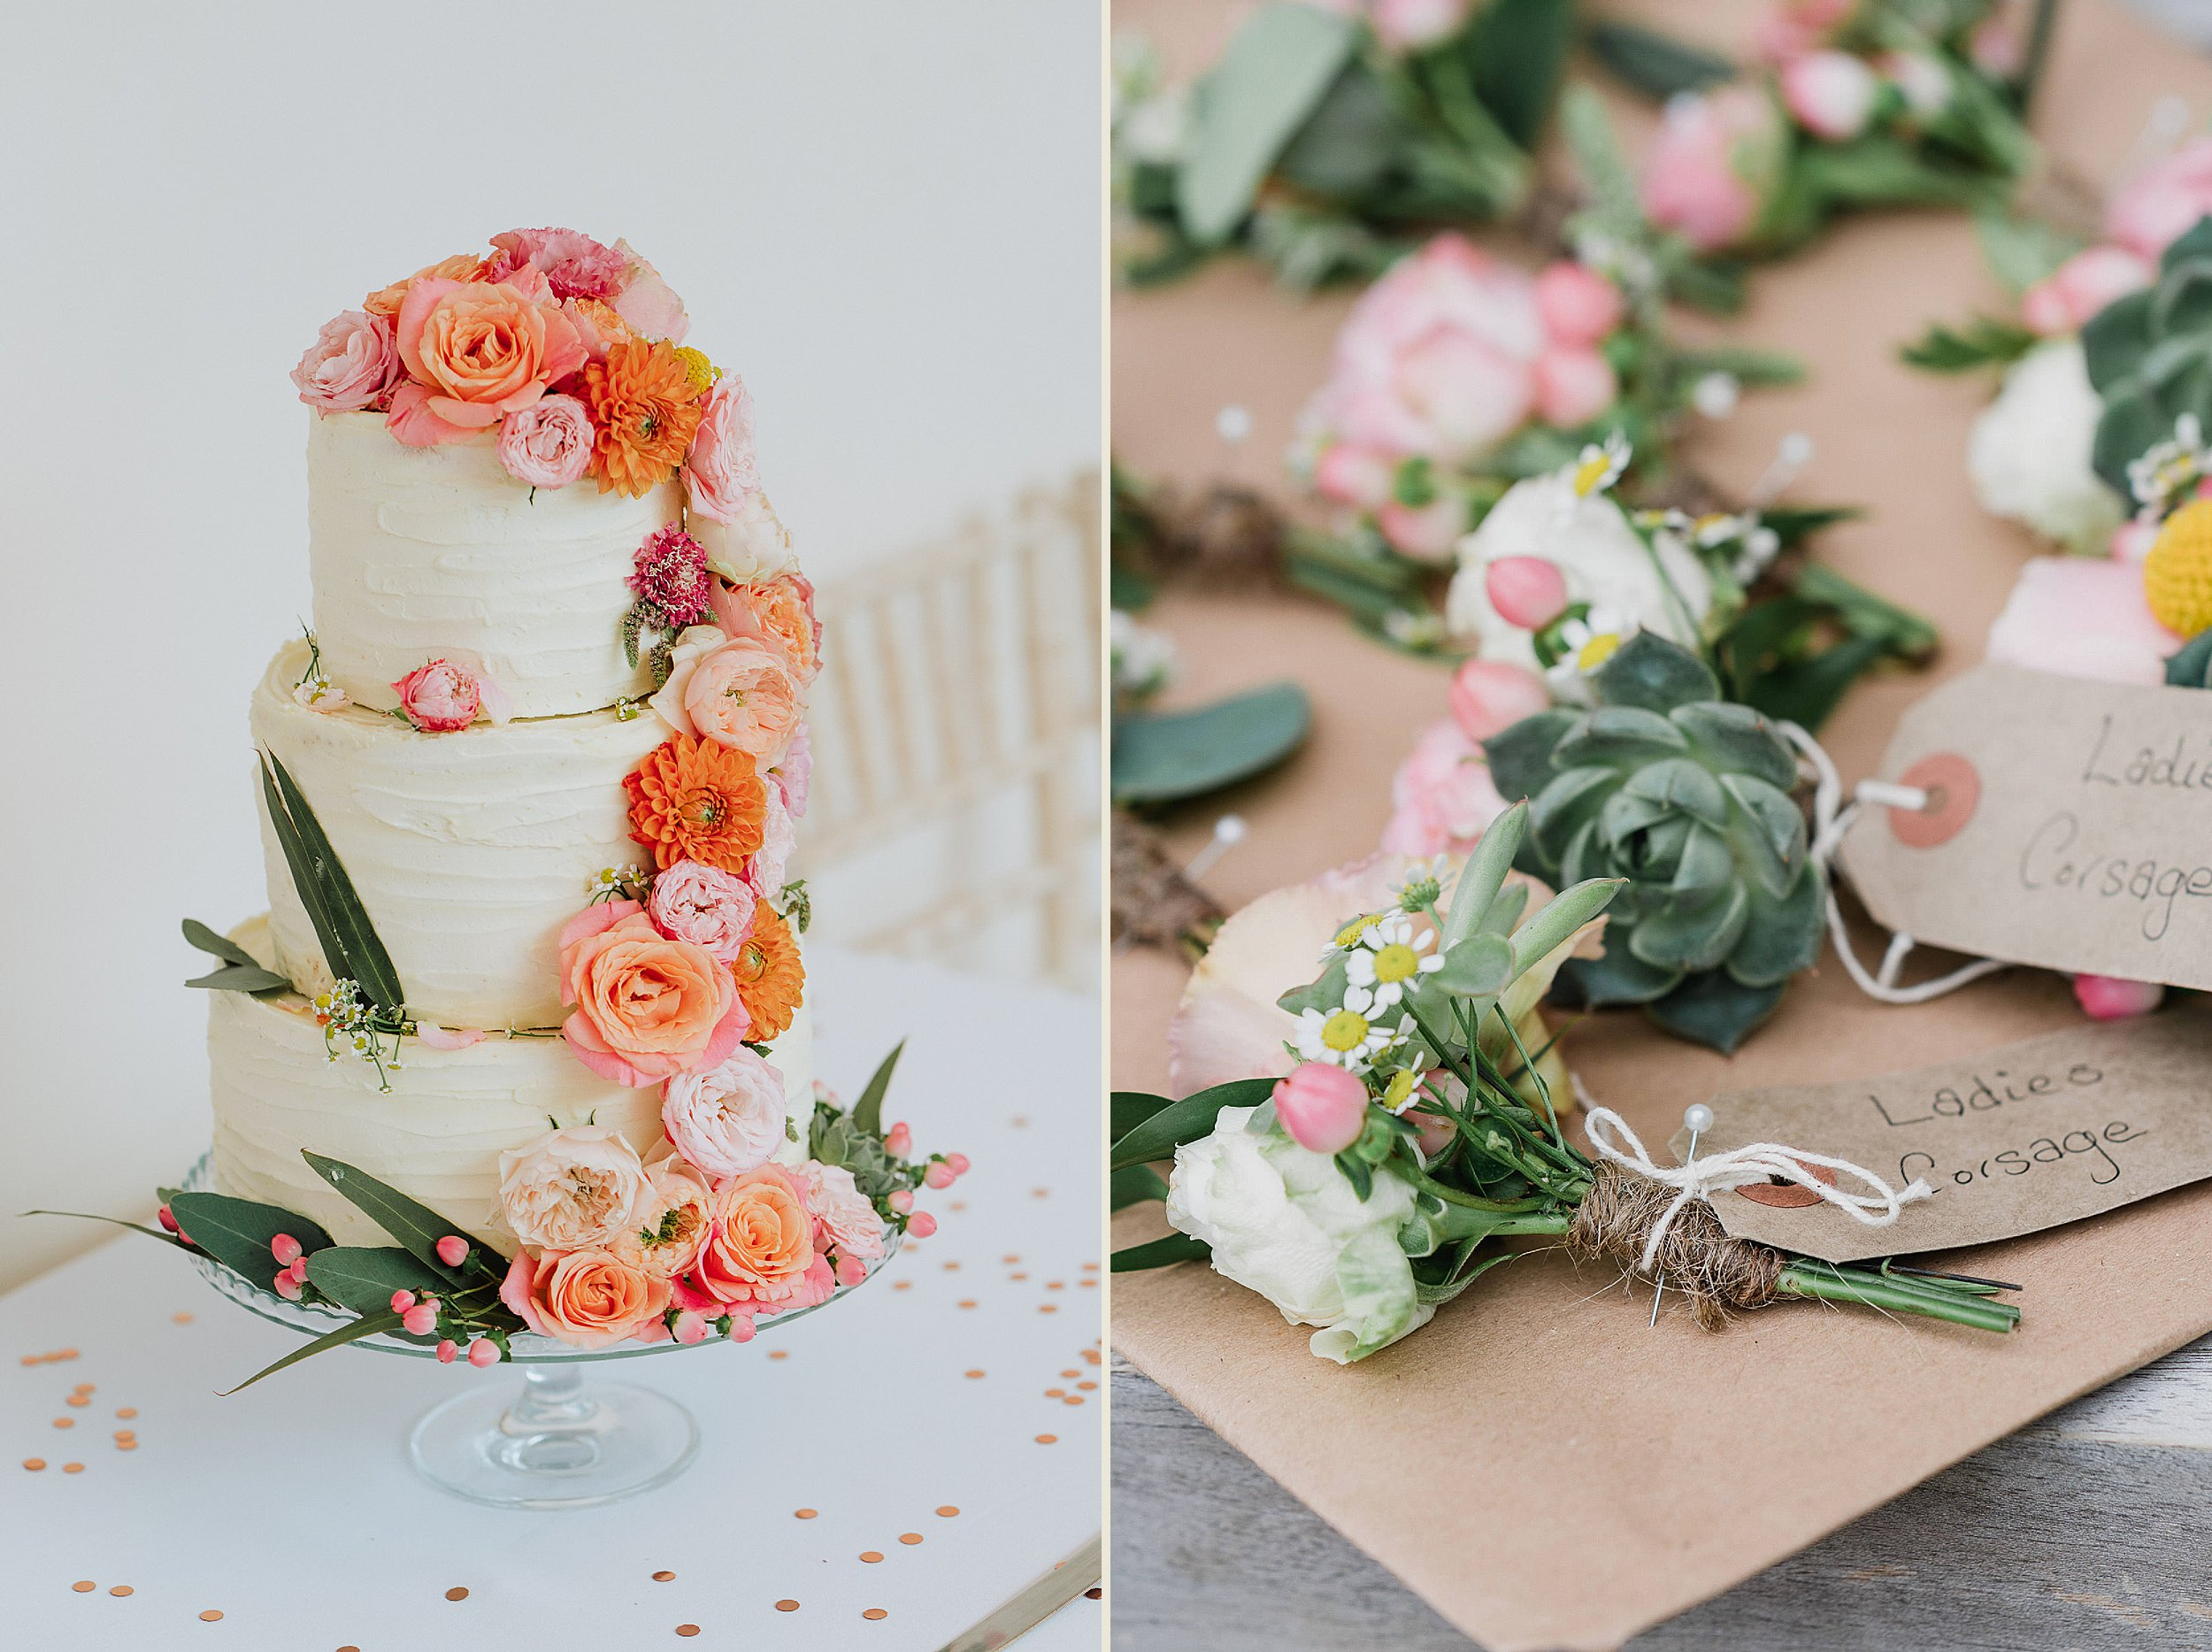 Orchardleigh Estate Wedding - Wedding Cake and Buttonhole flowers